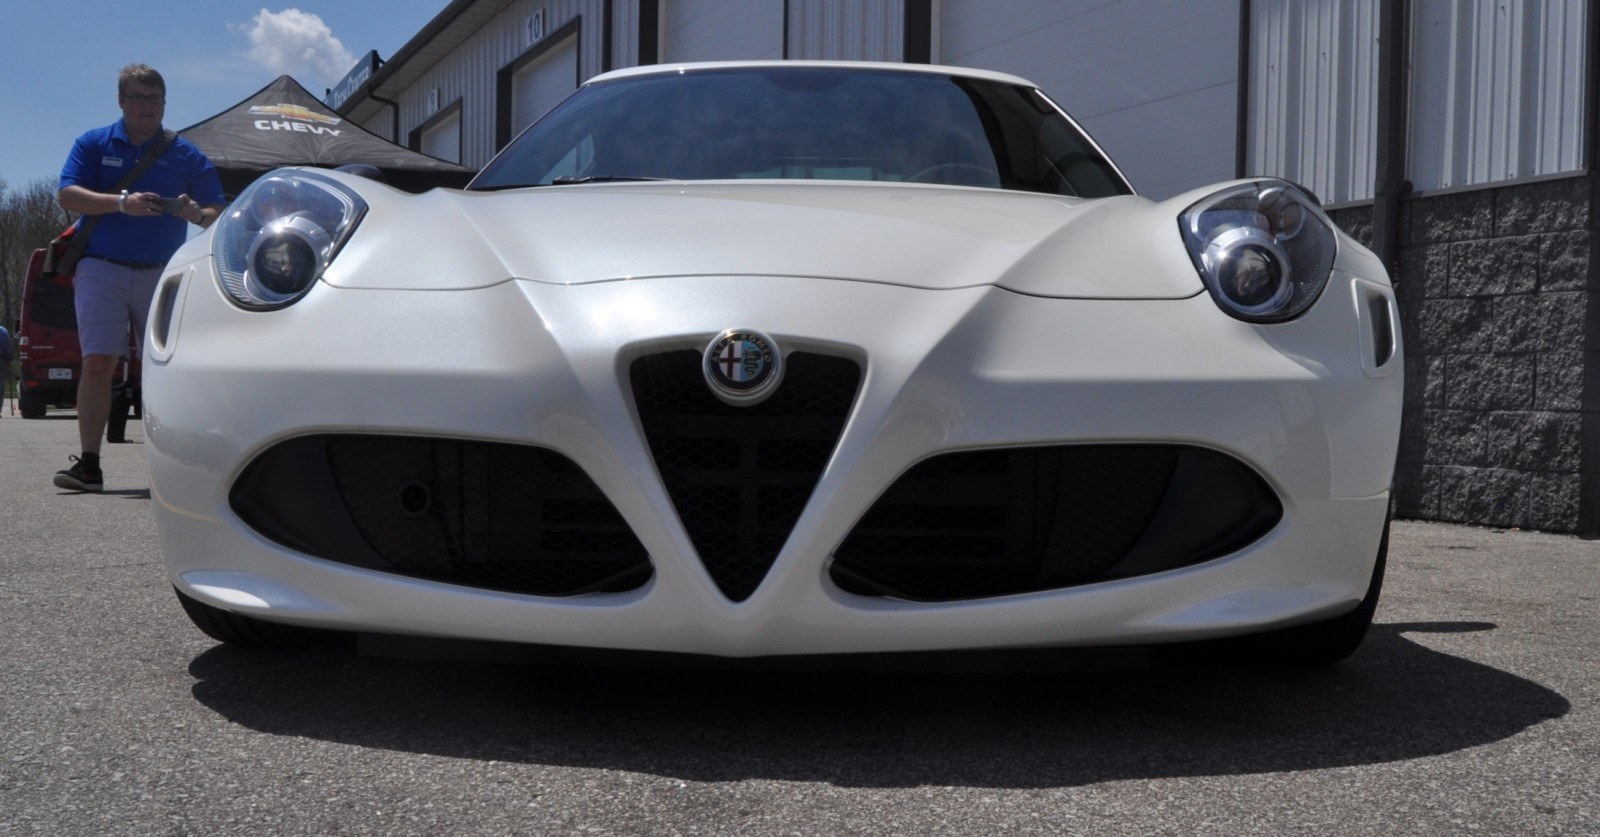 Gorgeous 2015 Alfa-Romeo 4C Revealed in Full USA Trim + New Headlights! 8